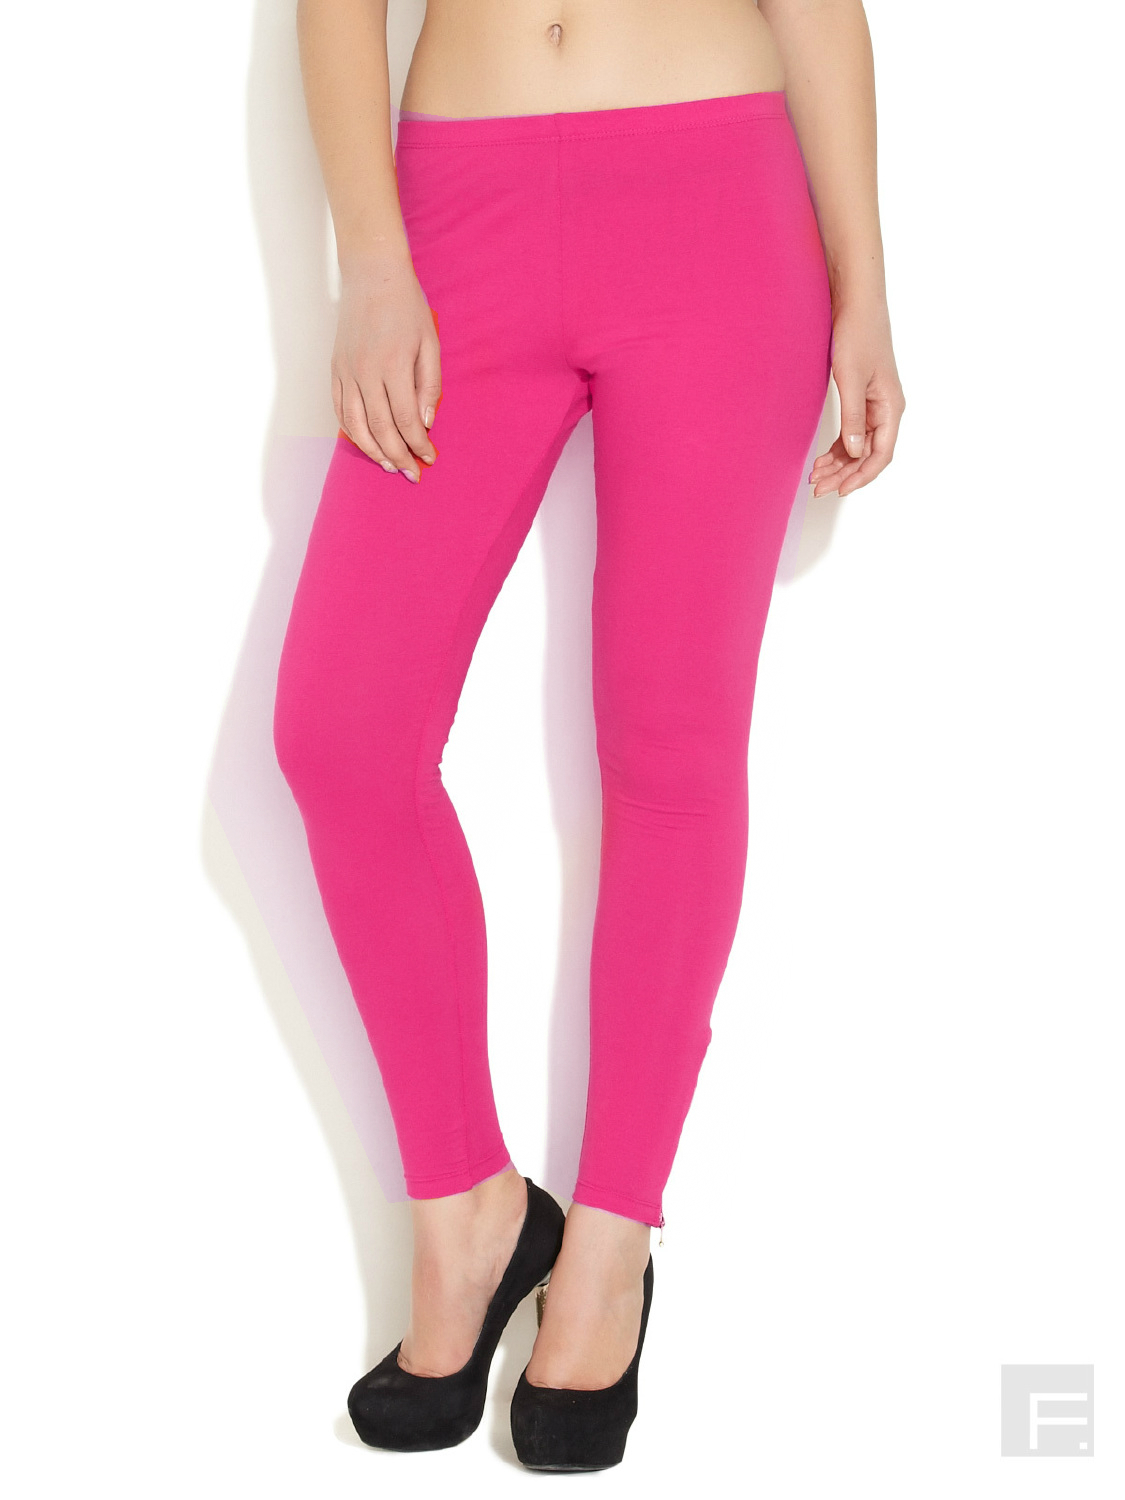 Zipper Leggings Buy Online India 39